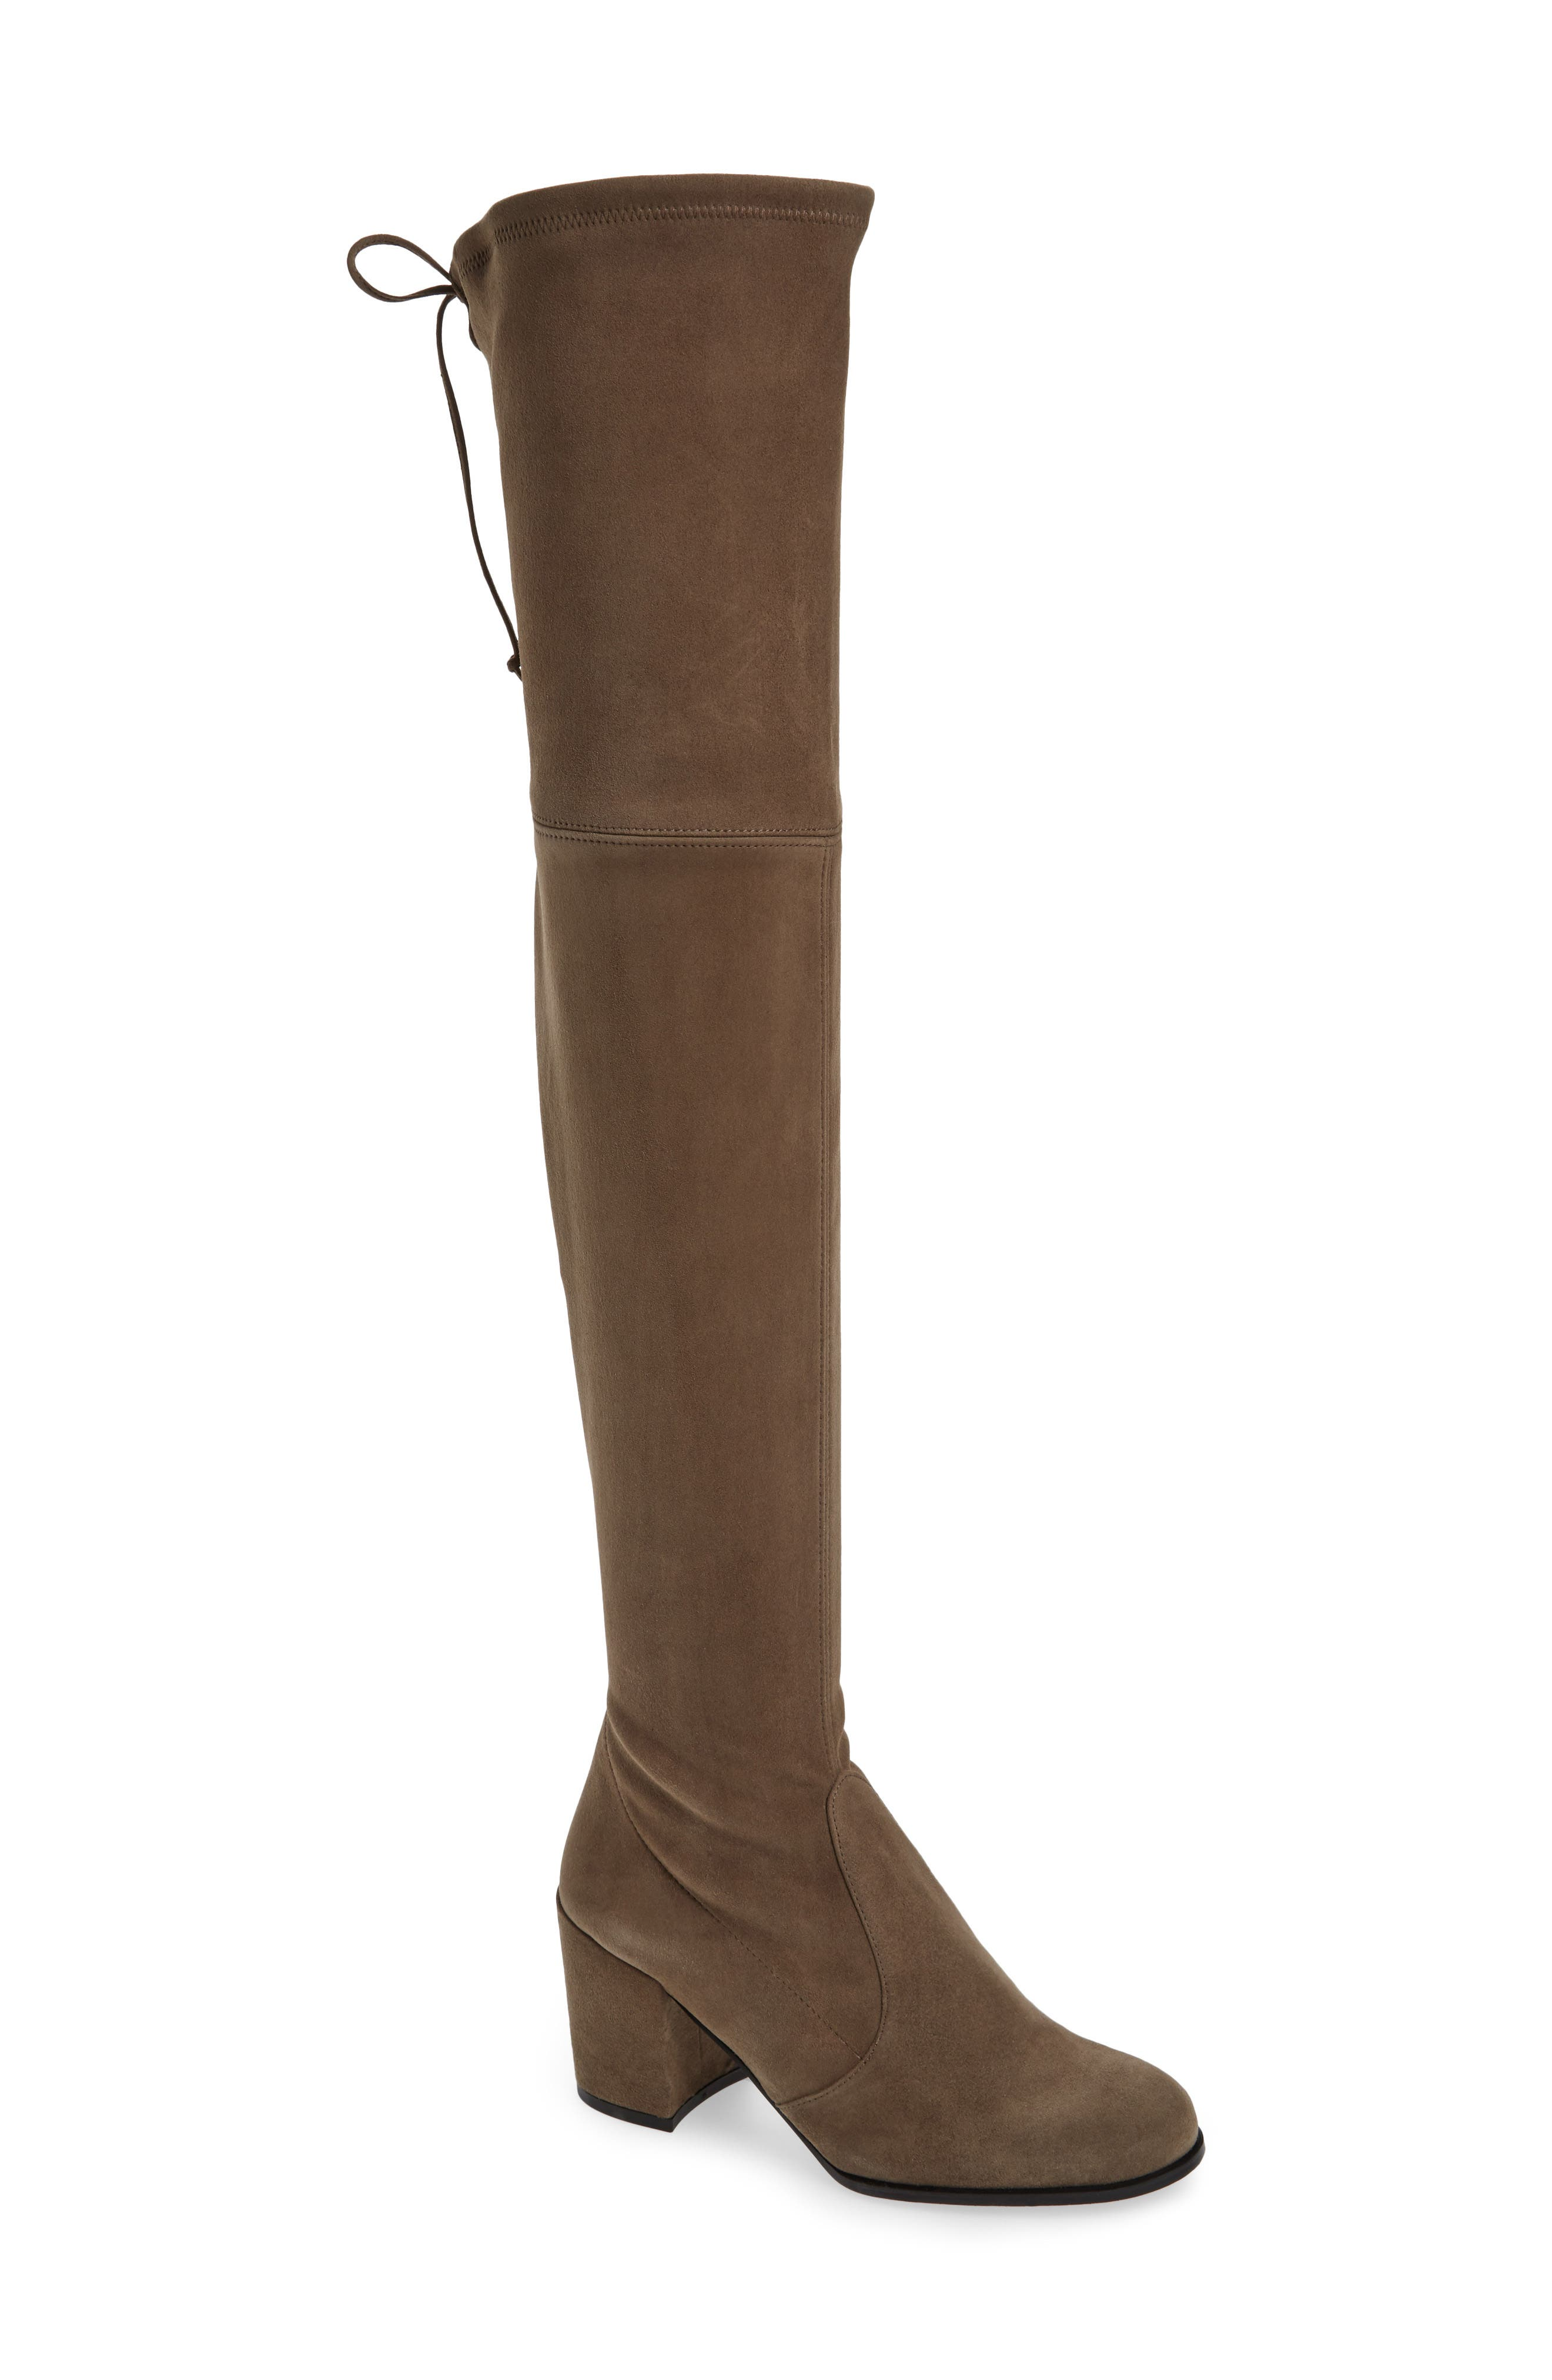 Tieland Over the Knee Boot,                         Main,                         color, Praline Suede